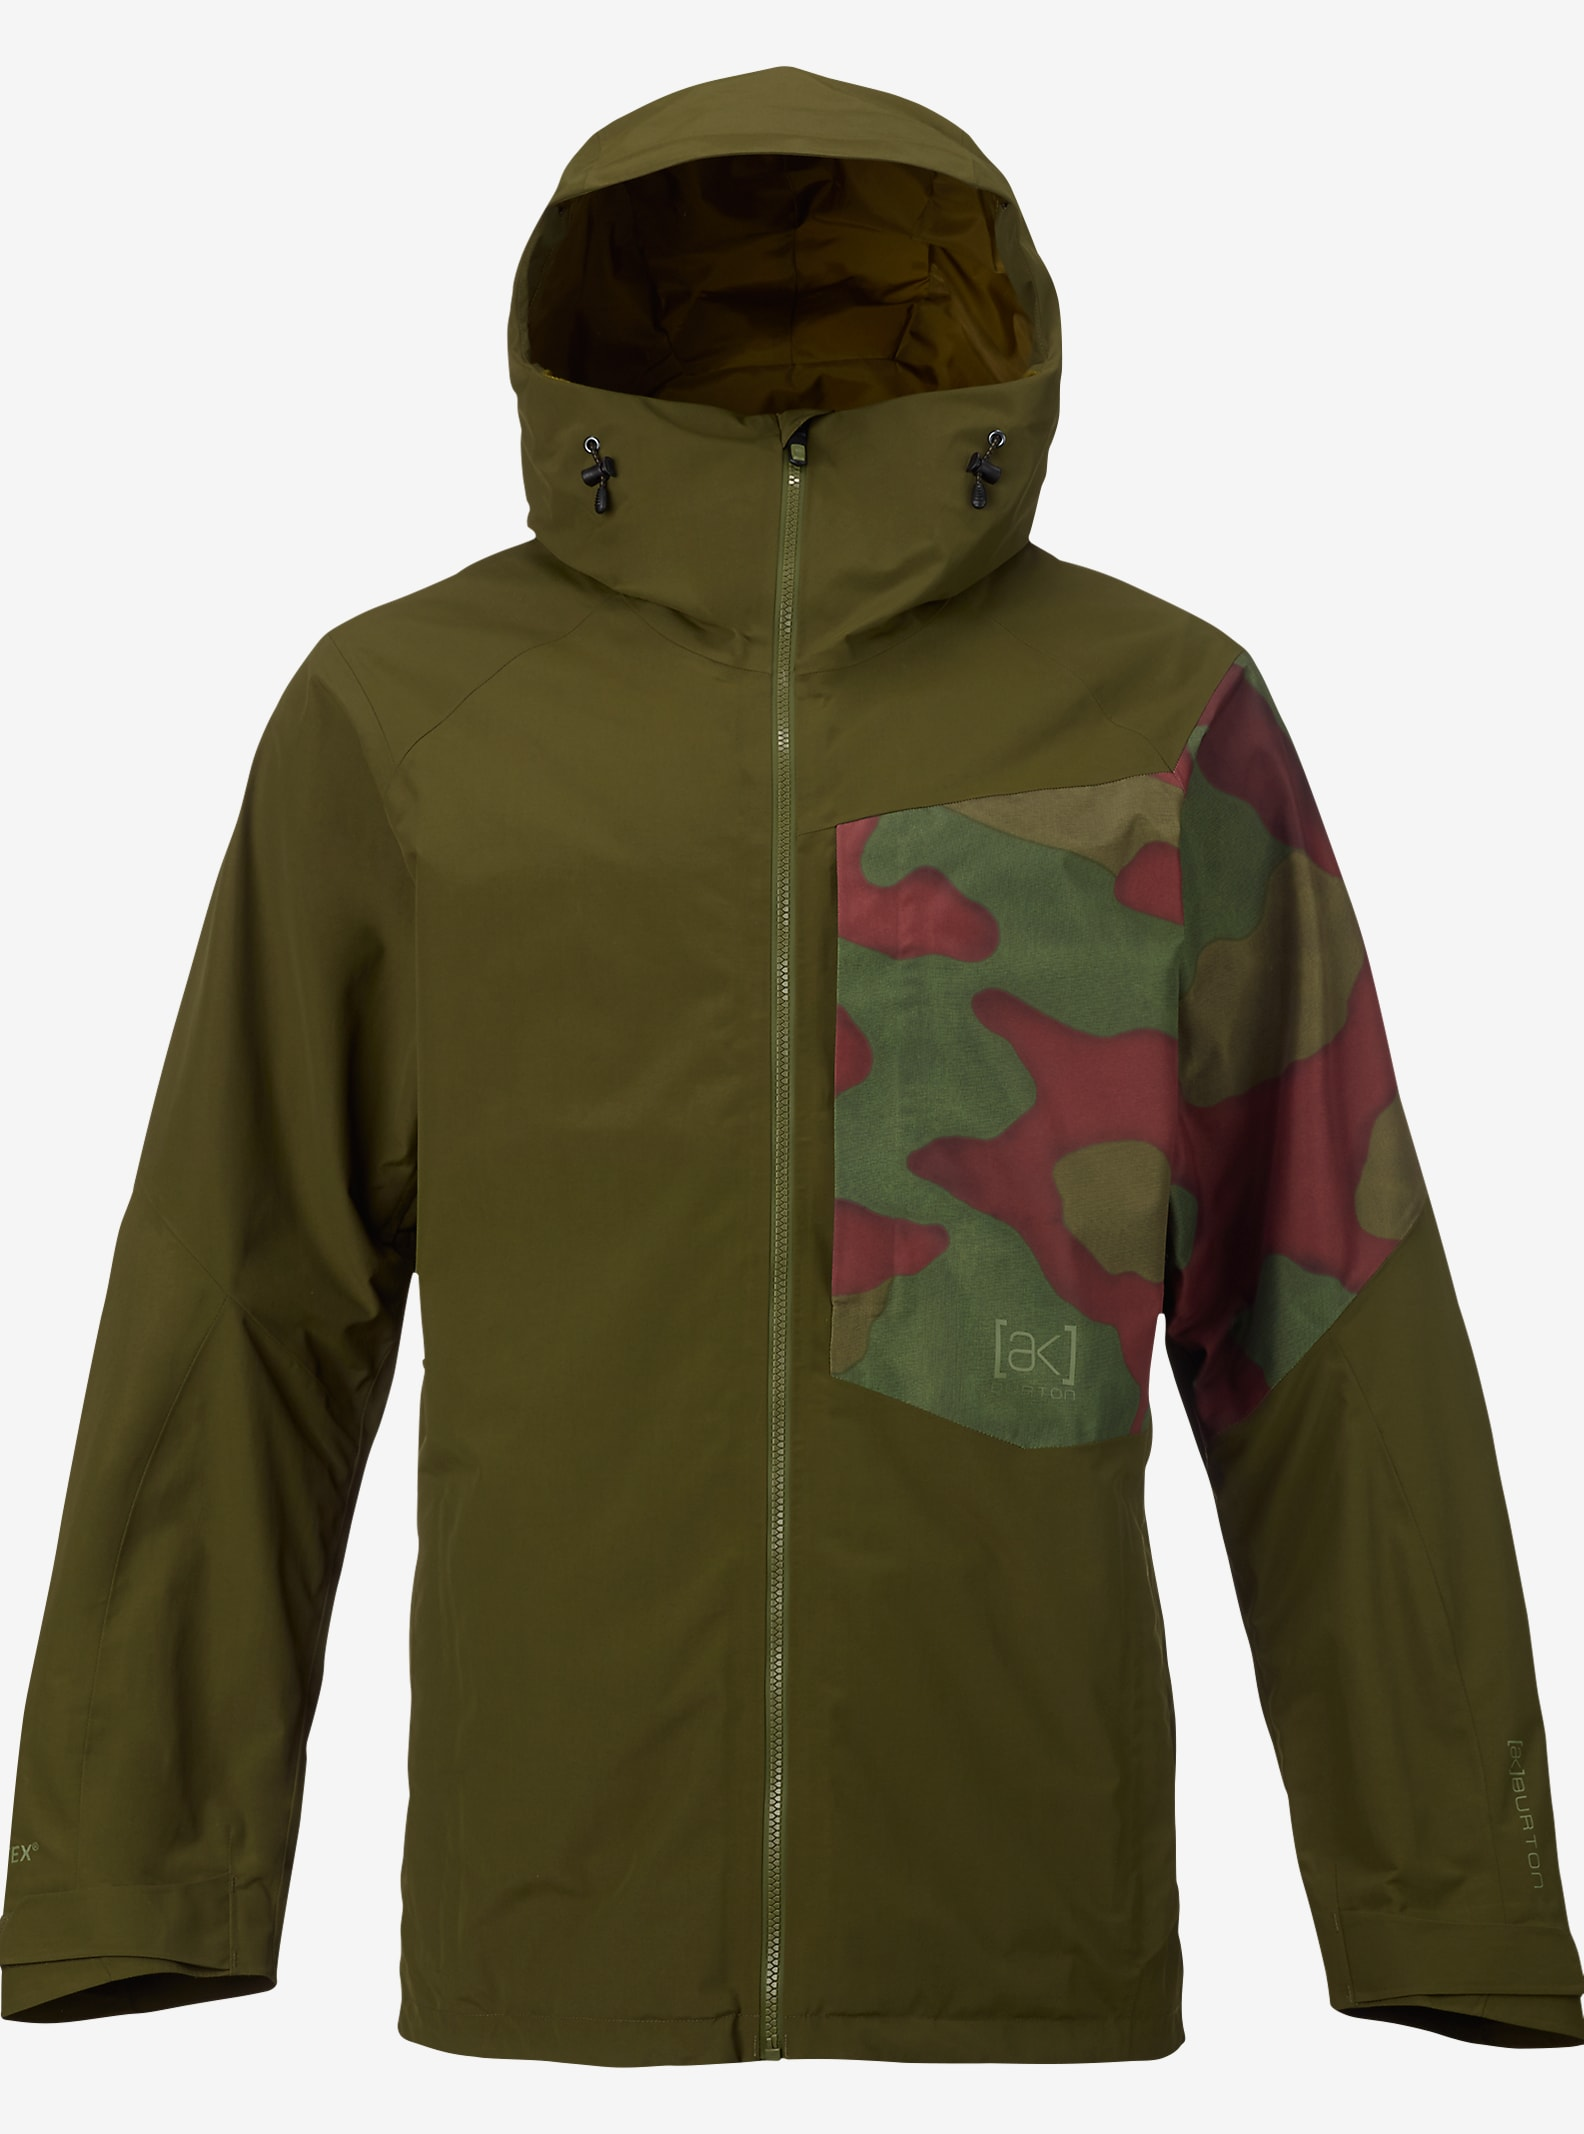 Burton [ak] 2L Boom Jacket shown in Jungle / Hombre Camo